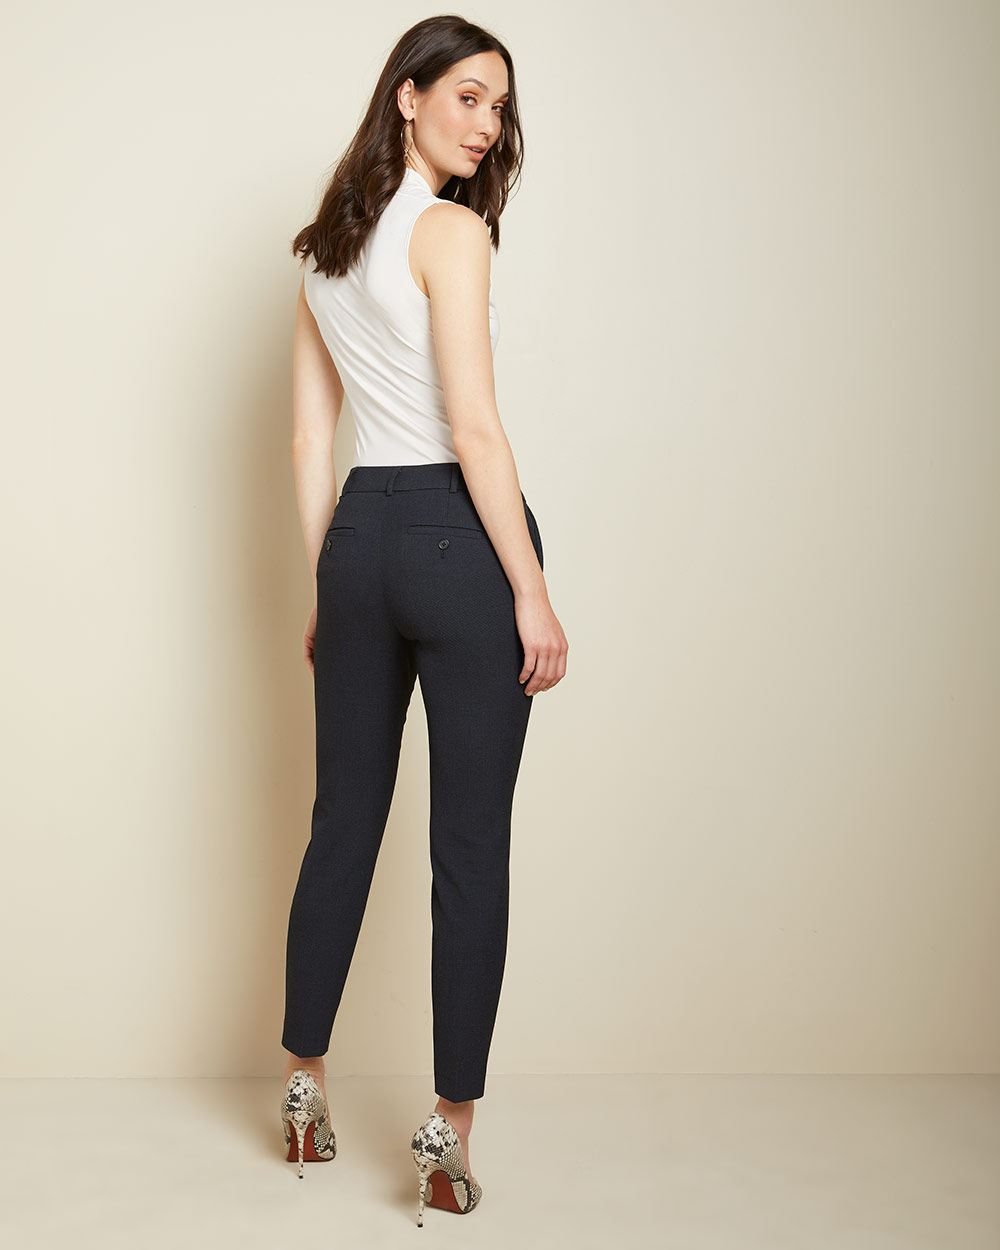 Two-tone Navy Signature fit Slim Leg Ankle Pant